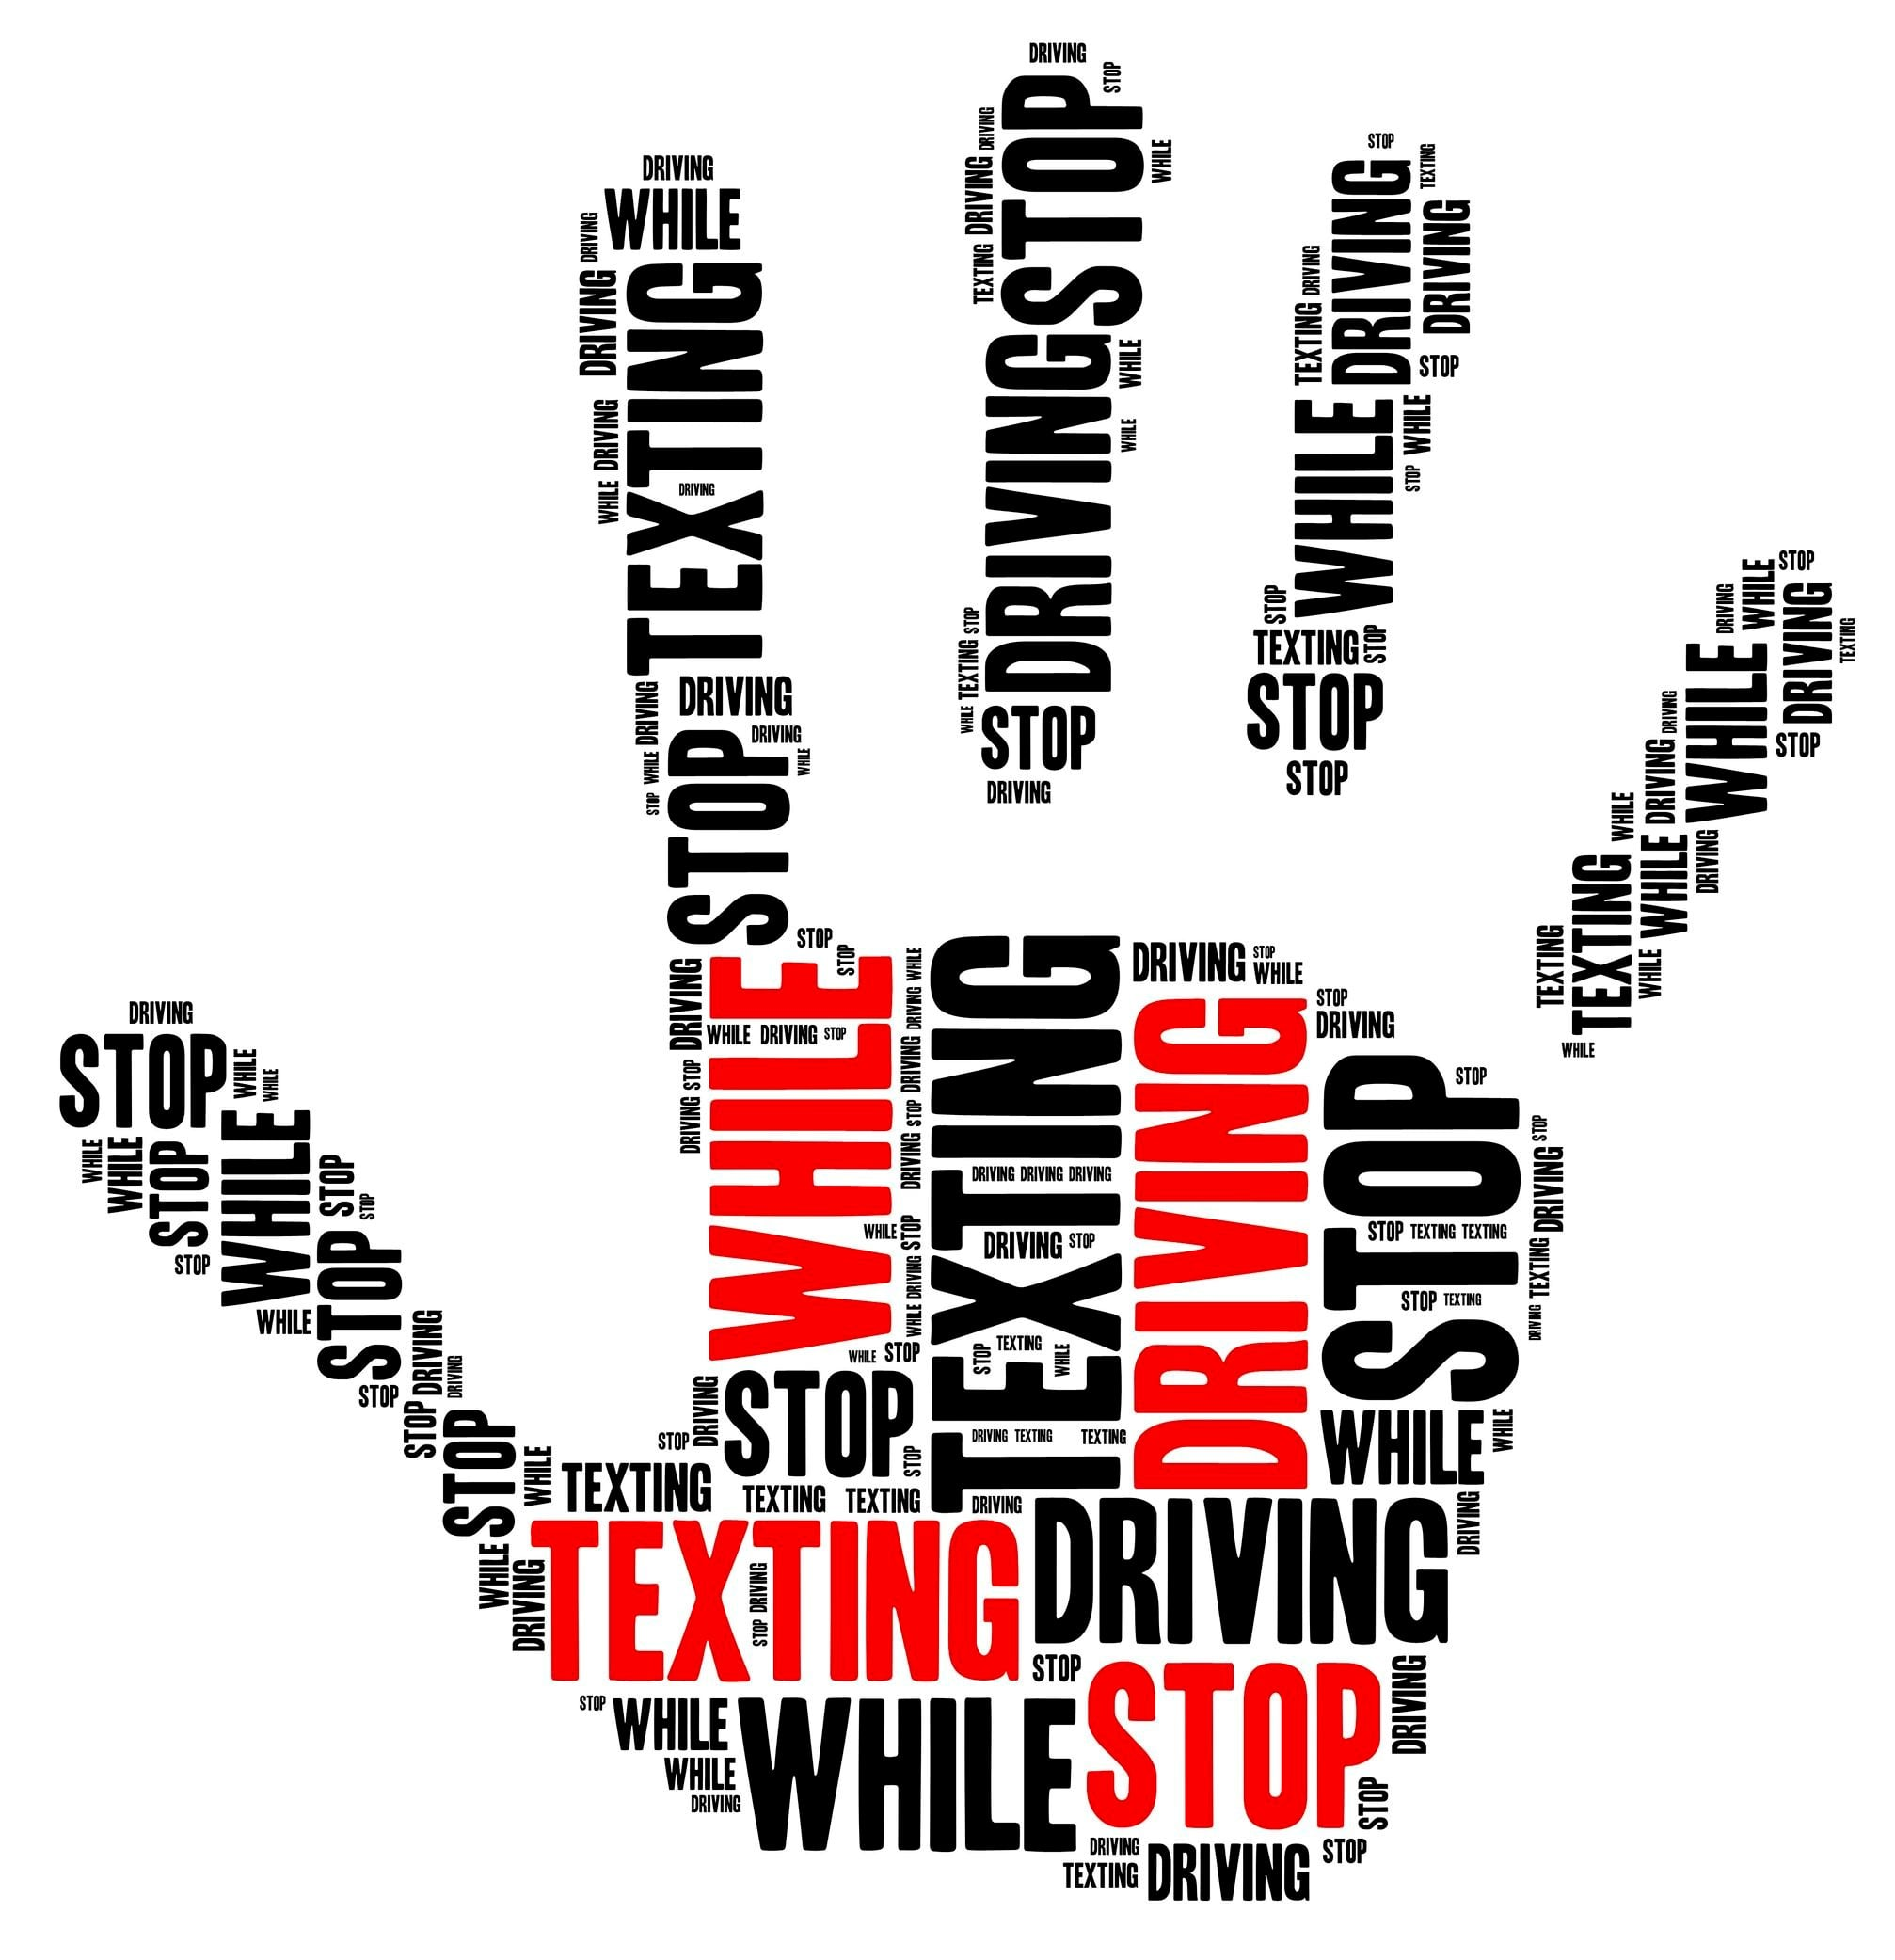 the laws and programs intended to prevent texting while driving From blocking texts completely to sending auto-reply texts in your place, some  apps will reward you for following road rules  and following road rules those  who send text messages while driving are 23 times more likely to experience a  crash  permission designed in collaboration with code & theory.